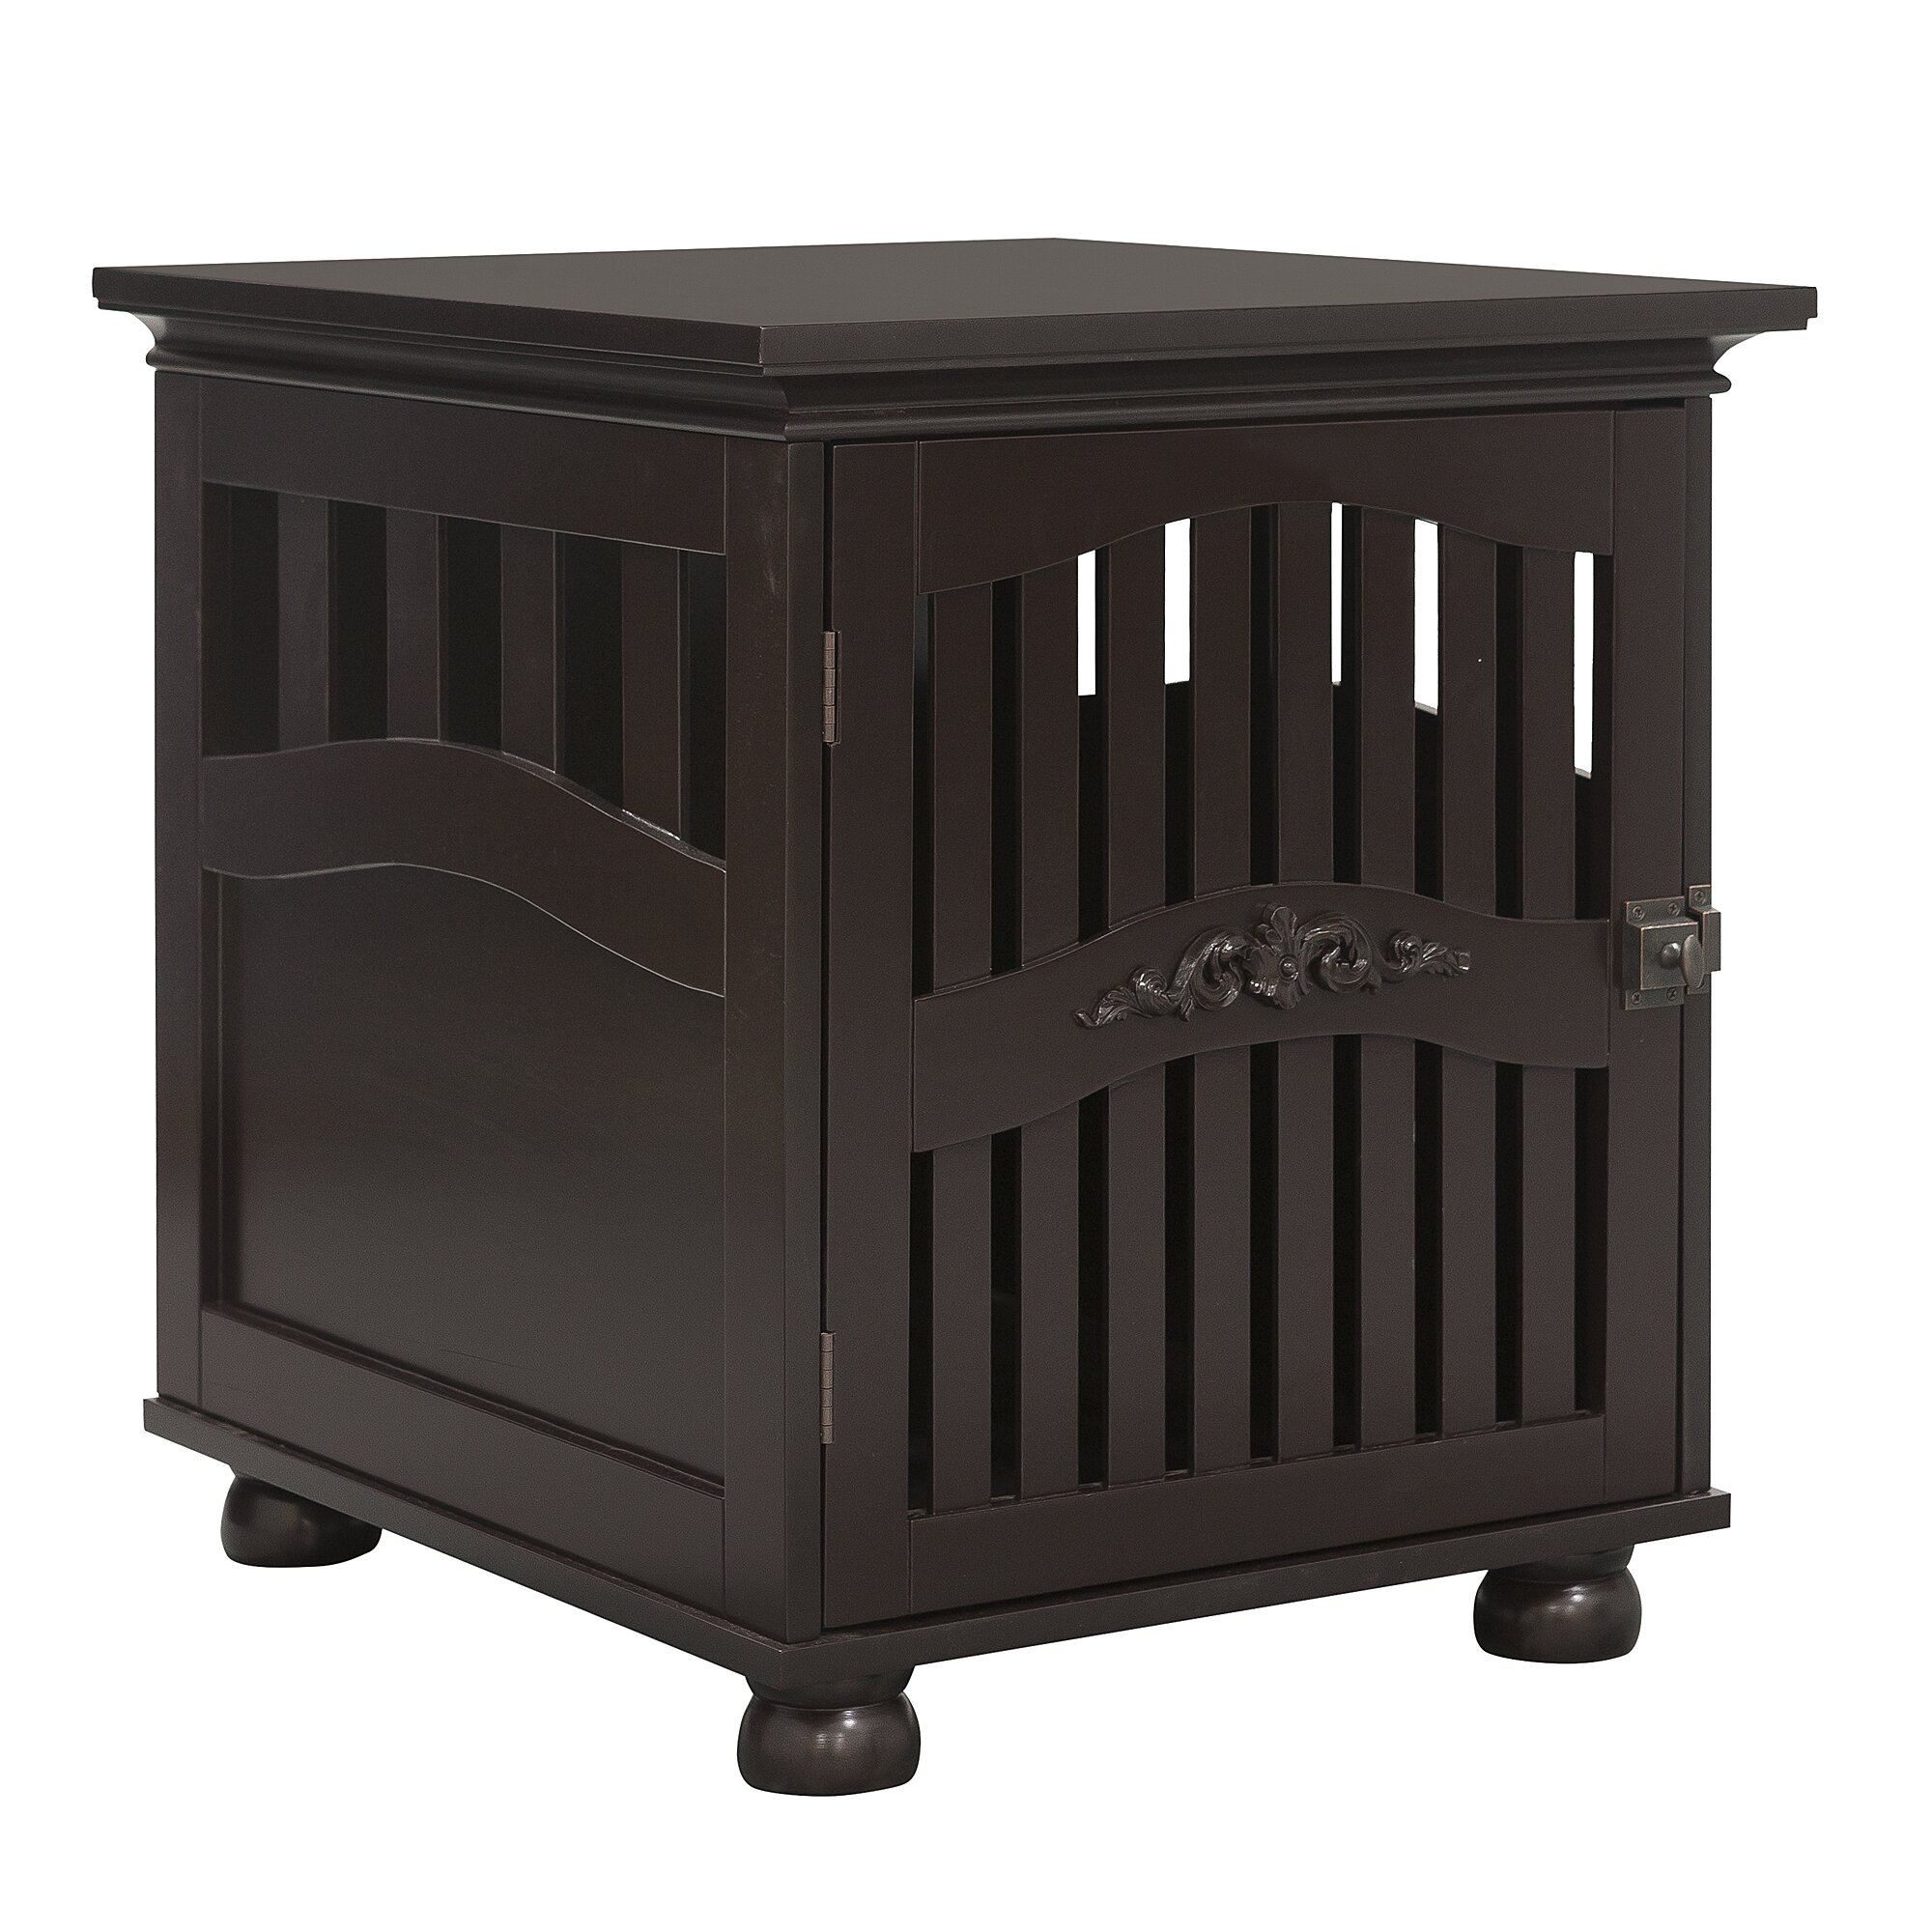 kirkland buddy residence pet crate end table by ethan pets